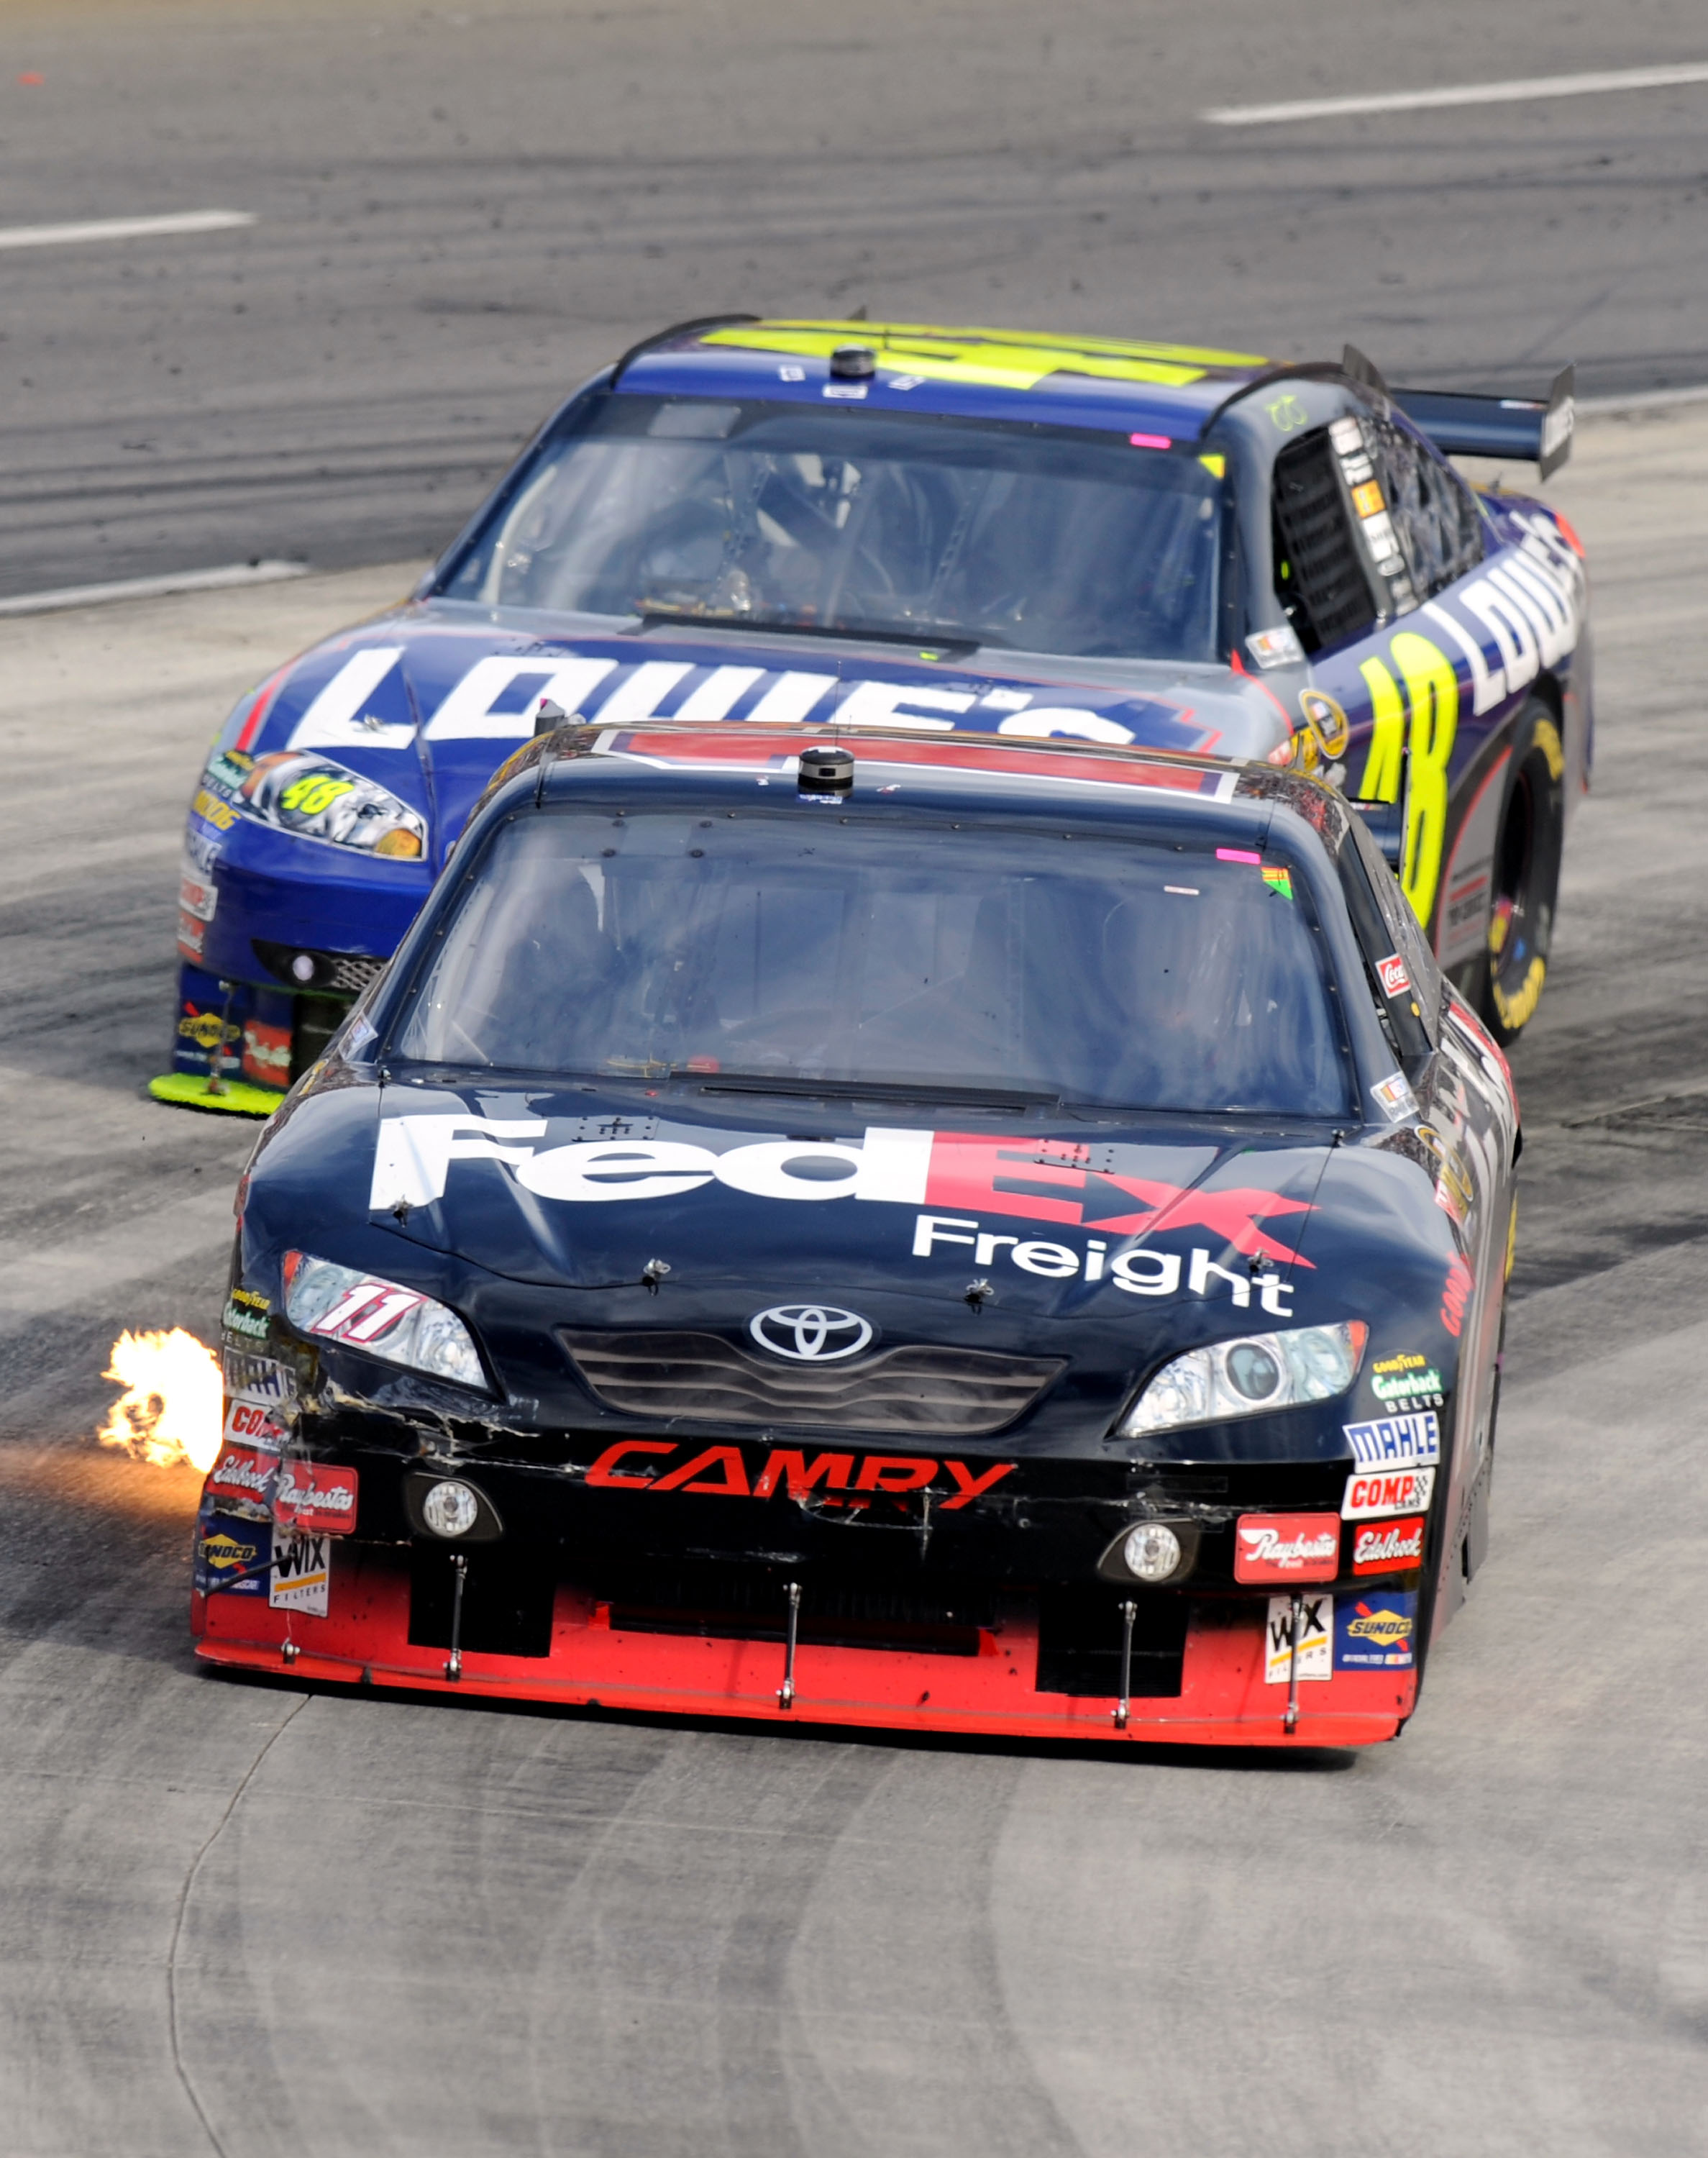 Hamlin couldn't hold off Johnson in the closing laps.